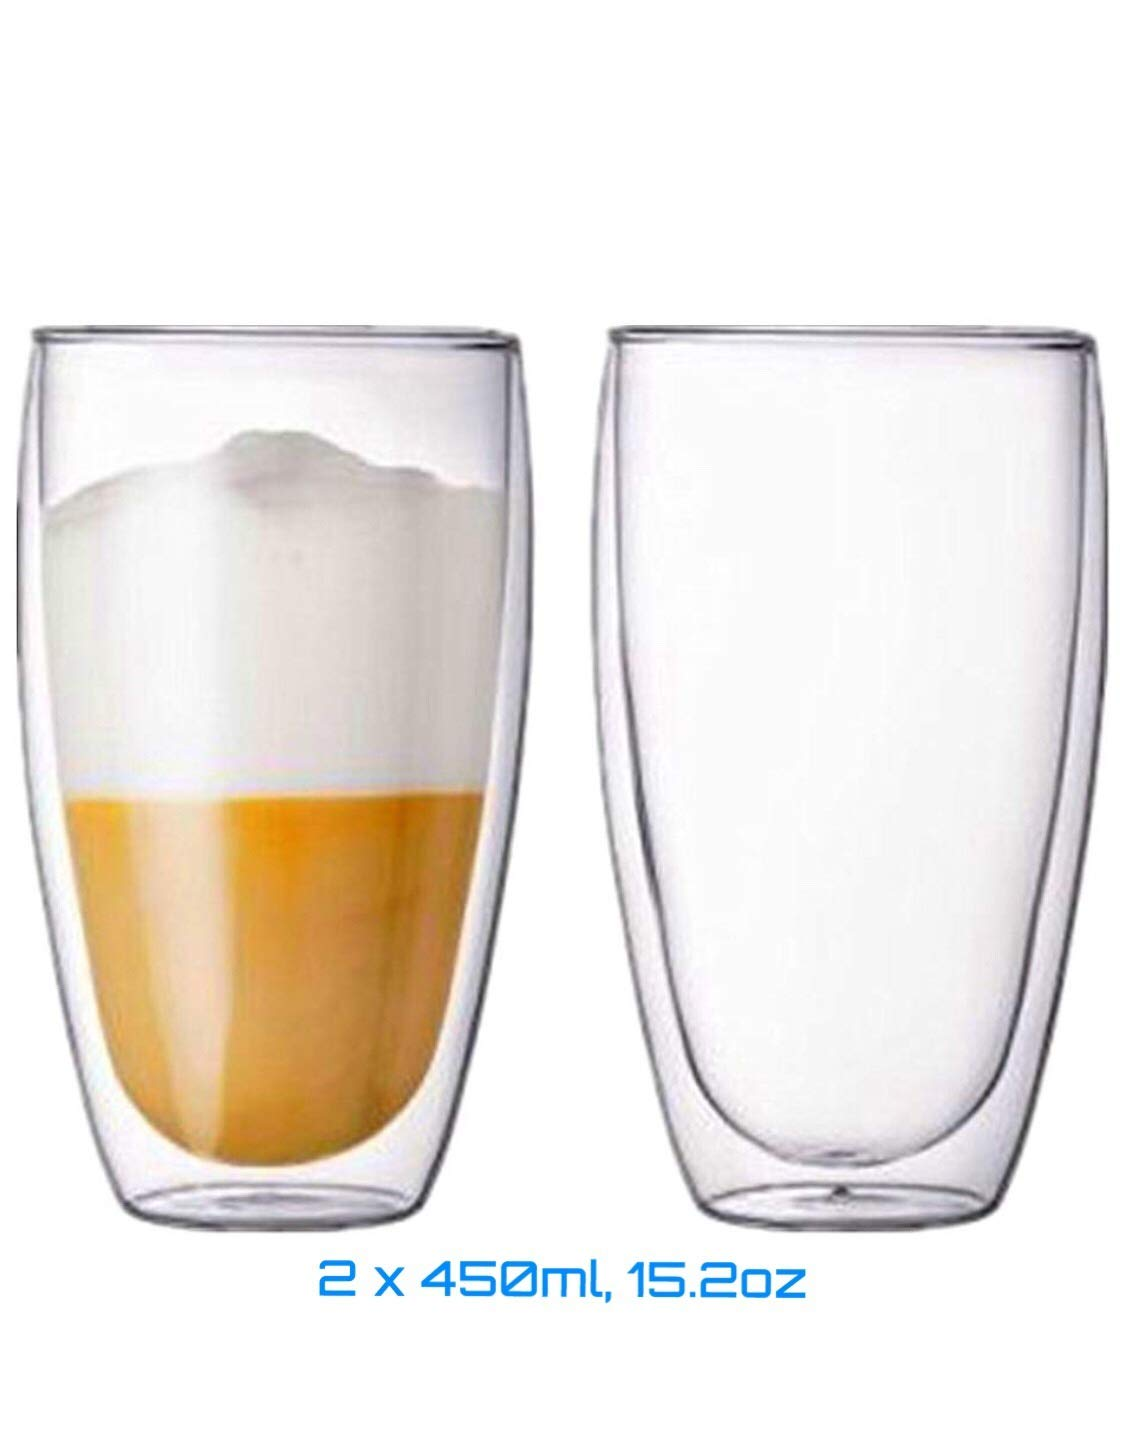 DOUBLE WALL GLASS CUP, set of 2, 450ML, 15.2OZ. Hot & Cold drinks, By Urbino USA